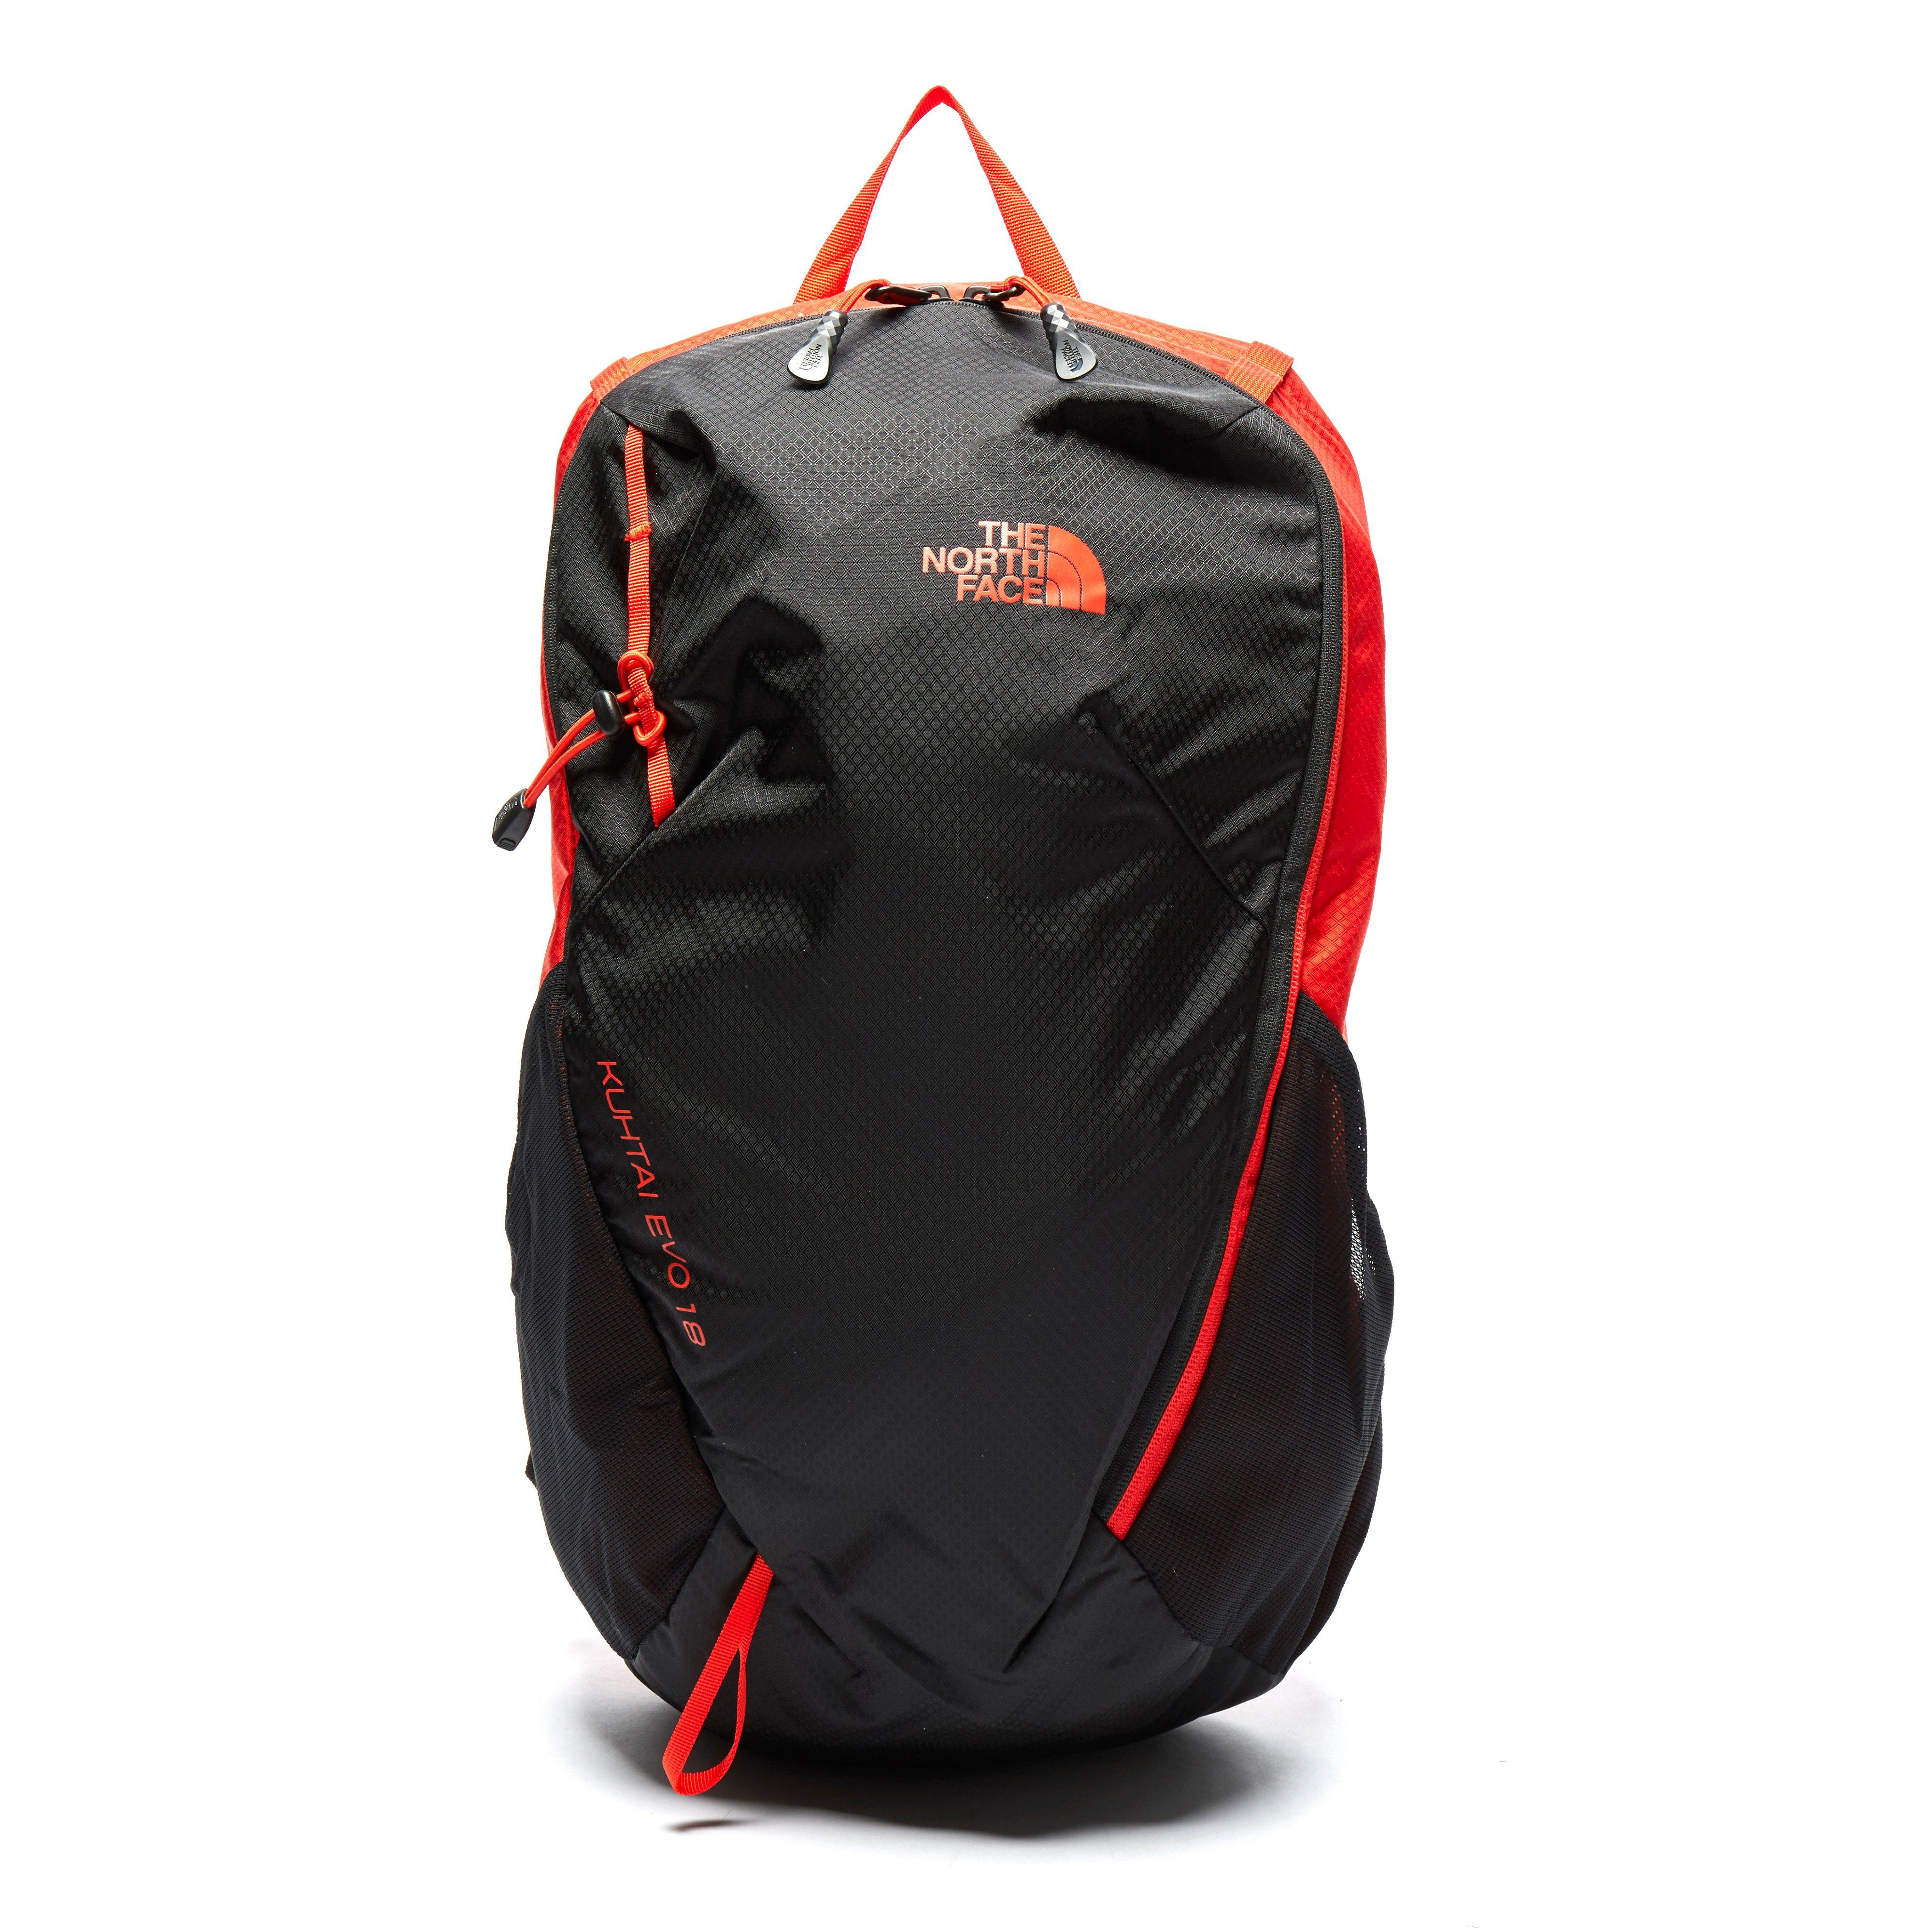 51cbccc0c Details about The North Face Kuhtai Evo 18L Backpack